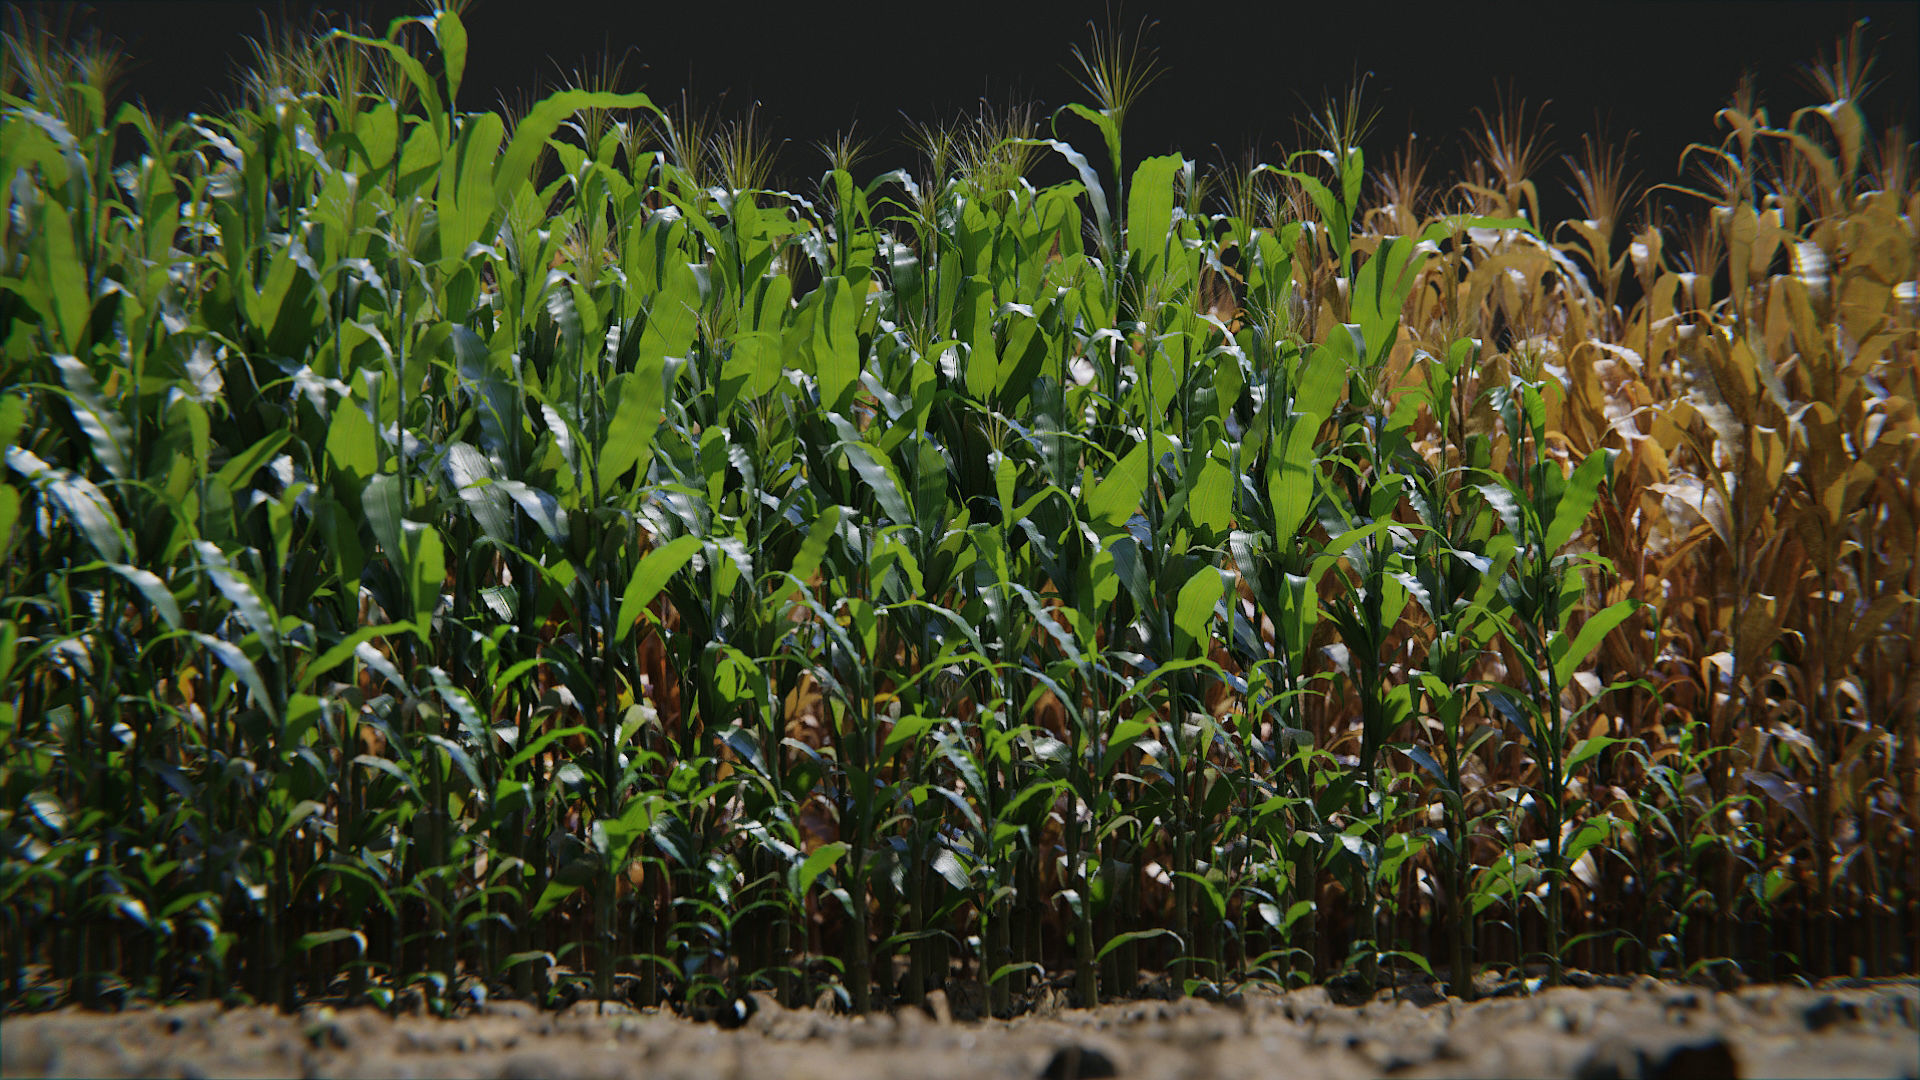 Corn Plants 15 Types in 5 Ages - PBR AssetKit